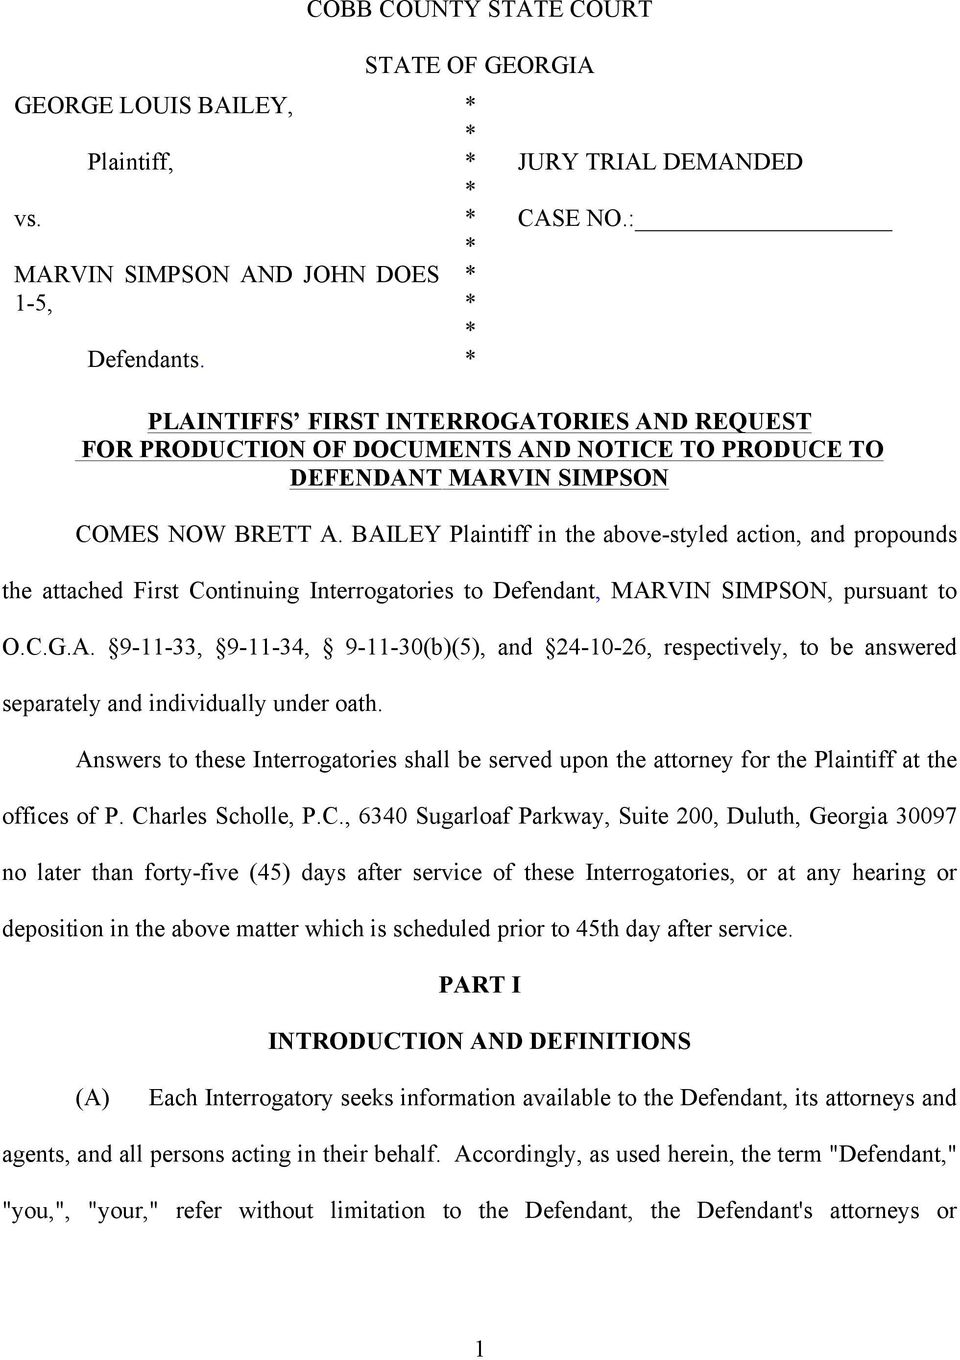 BAILEY Plaintiff in the above-styled action, and propounds the attached First Continuing Interrogatories to Defendant, MARVIN SIMPSON, pursuant to O.C.G.A. 9-11-33, 9-11-34, 9-11-30(b)(5), and 24-10-26, respectively, to be answered separately and individually under oath.